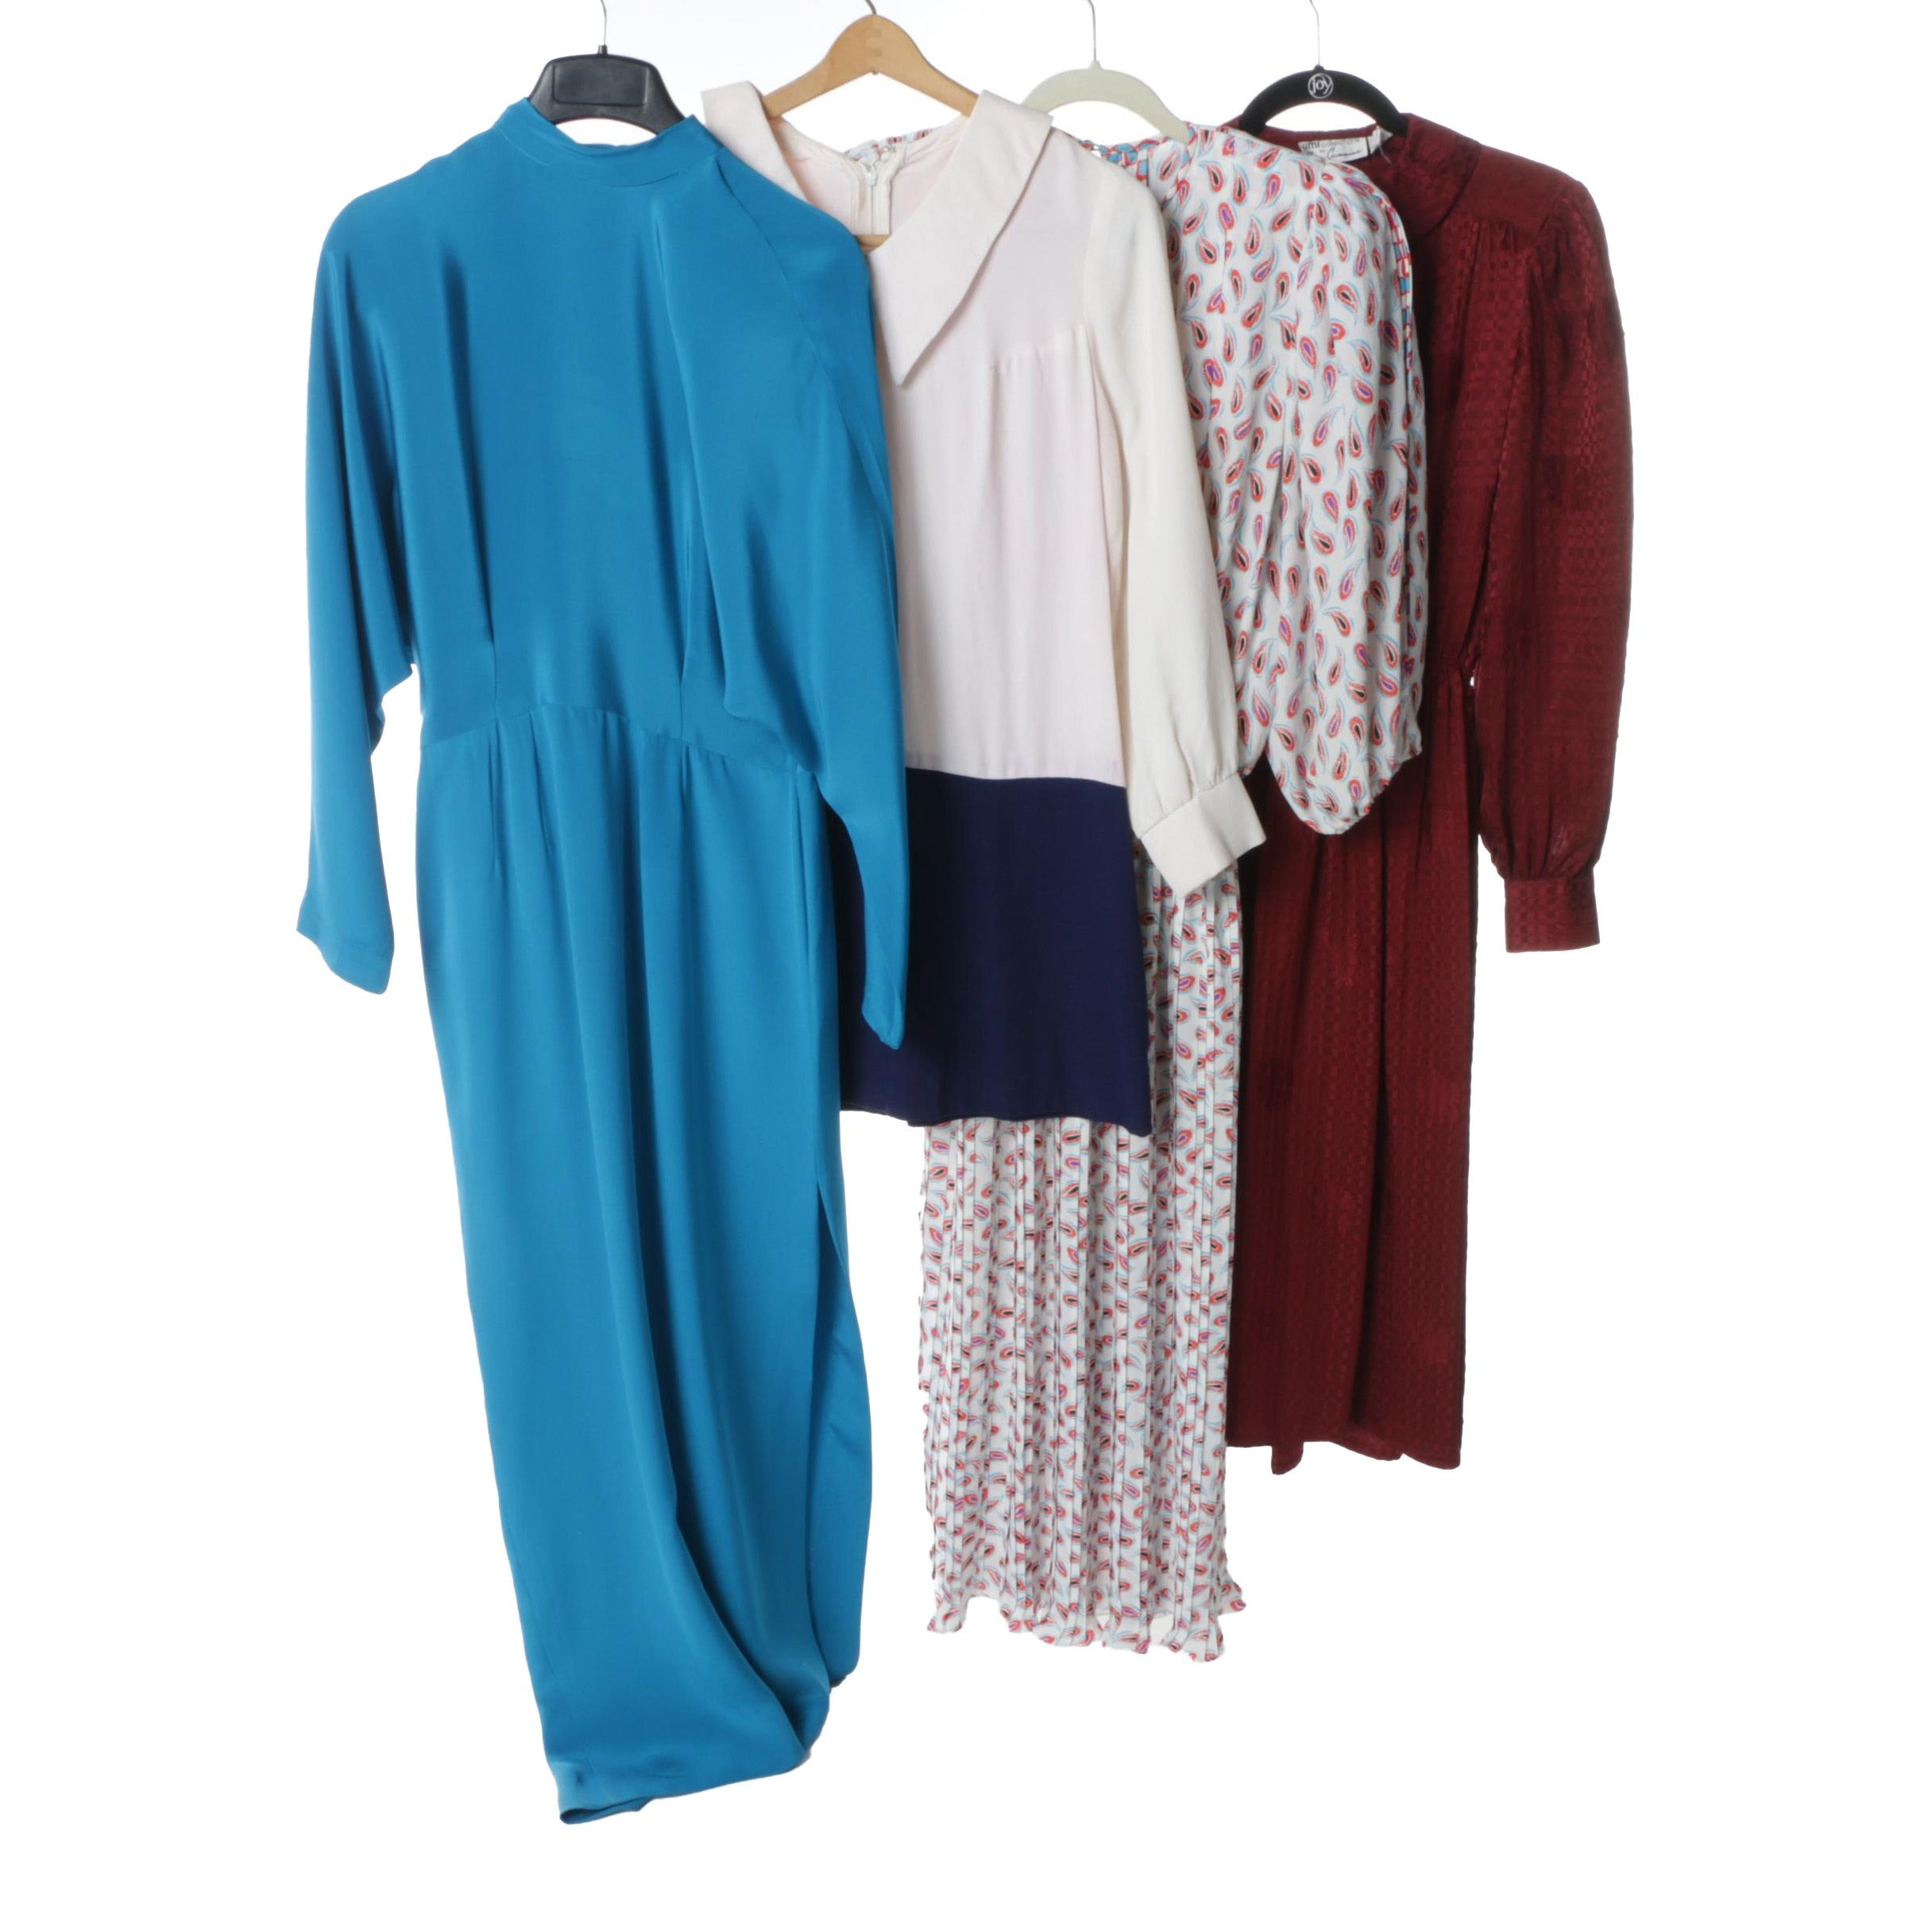 Women's 1980s Vintage Dresses Including Diane Freis